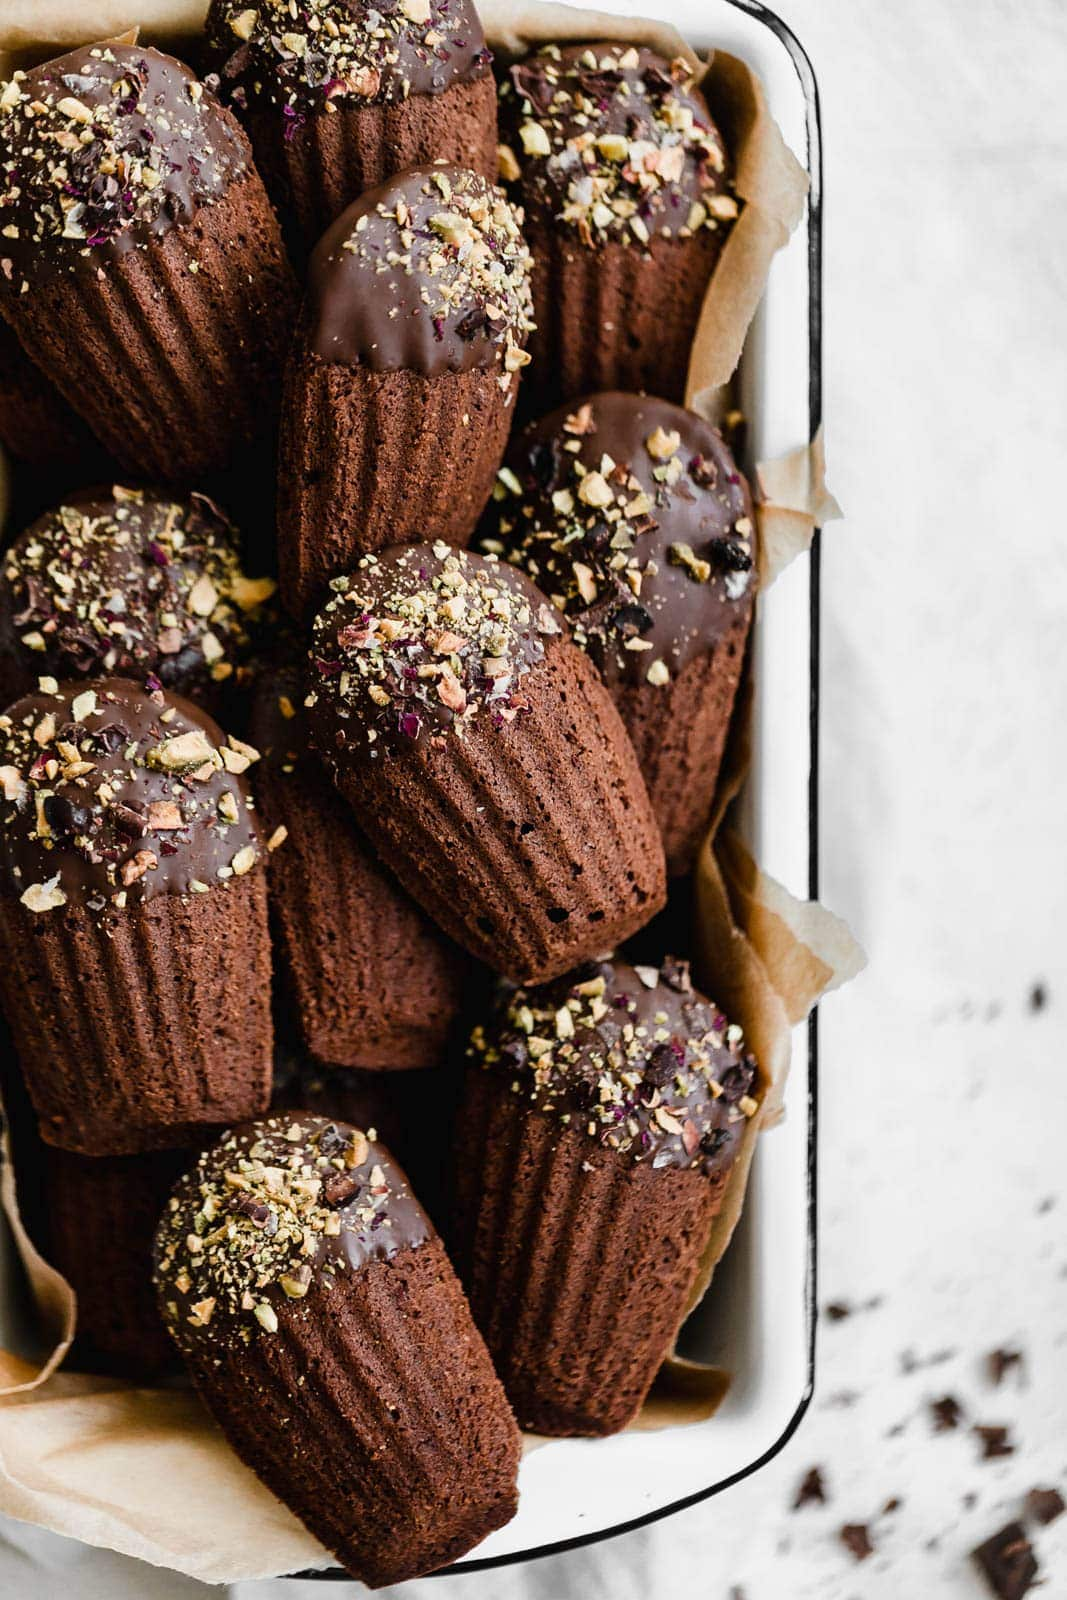 Chocolate-Dipped Chocolate Madeleines in loaf pan